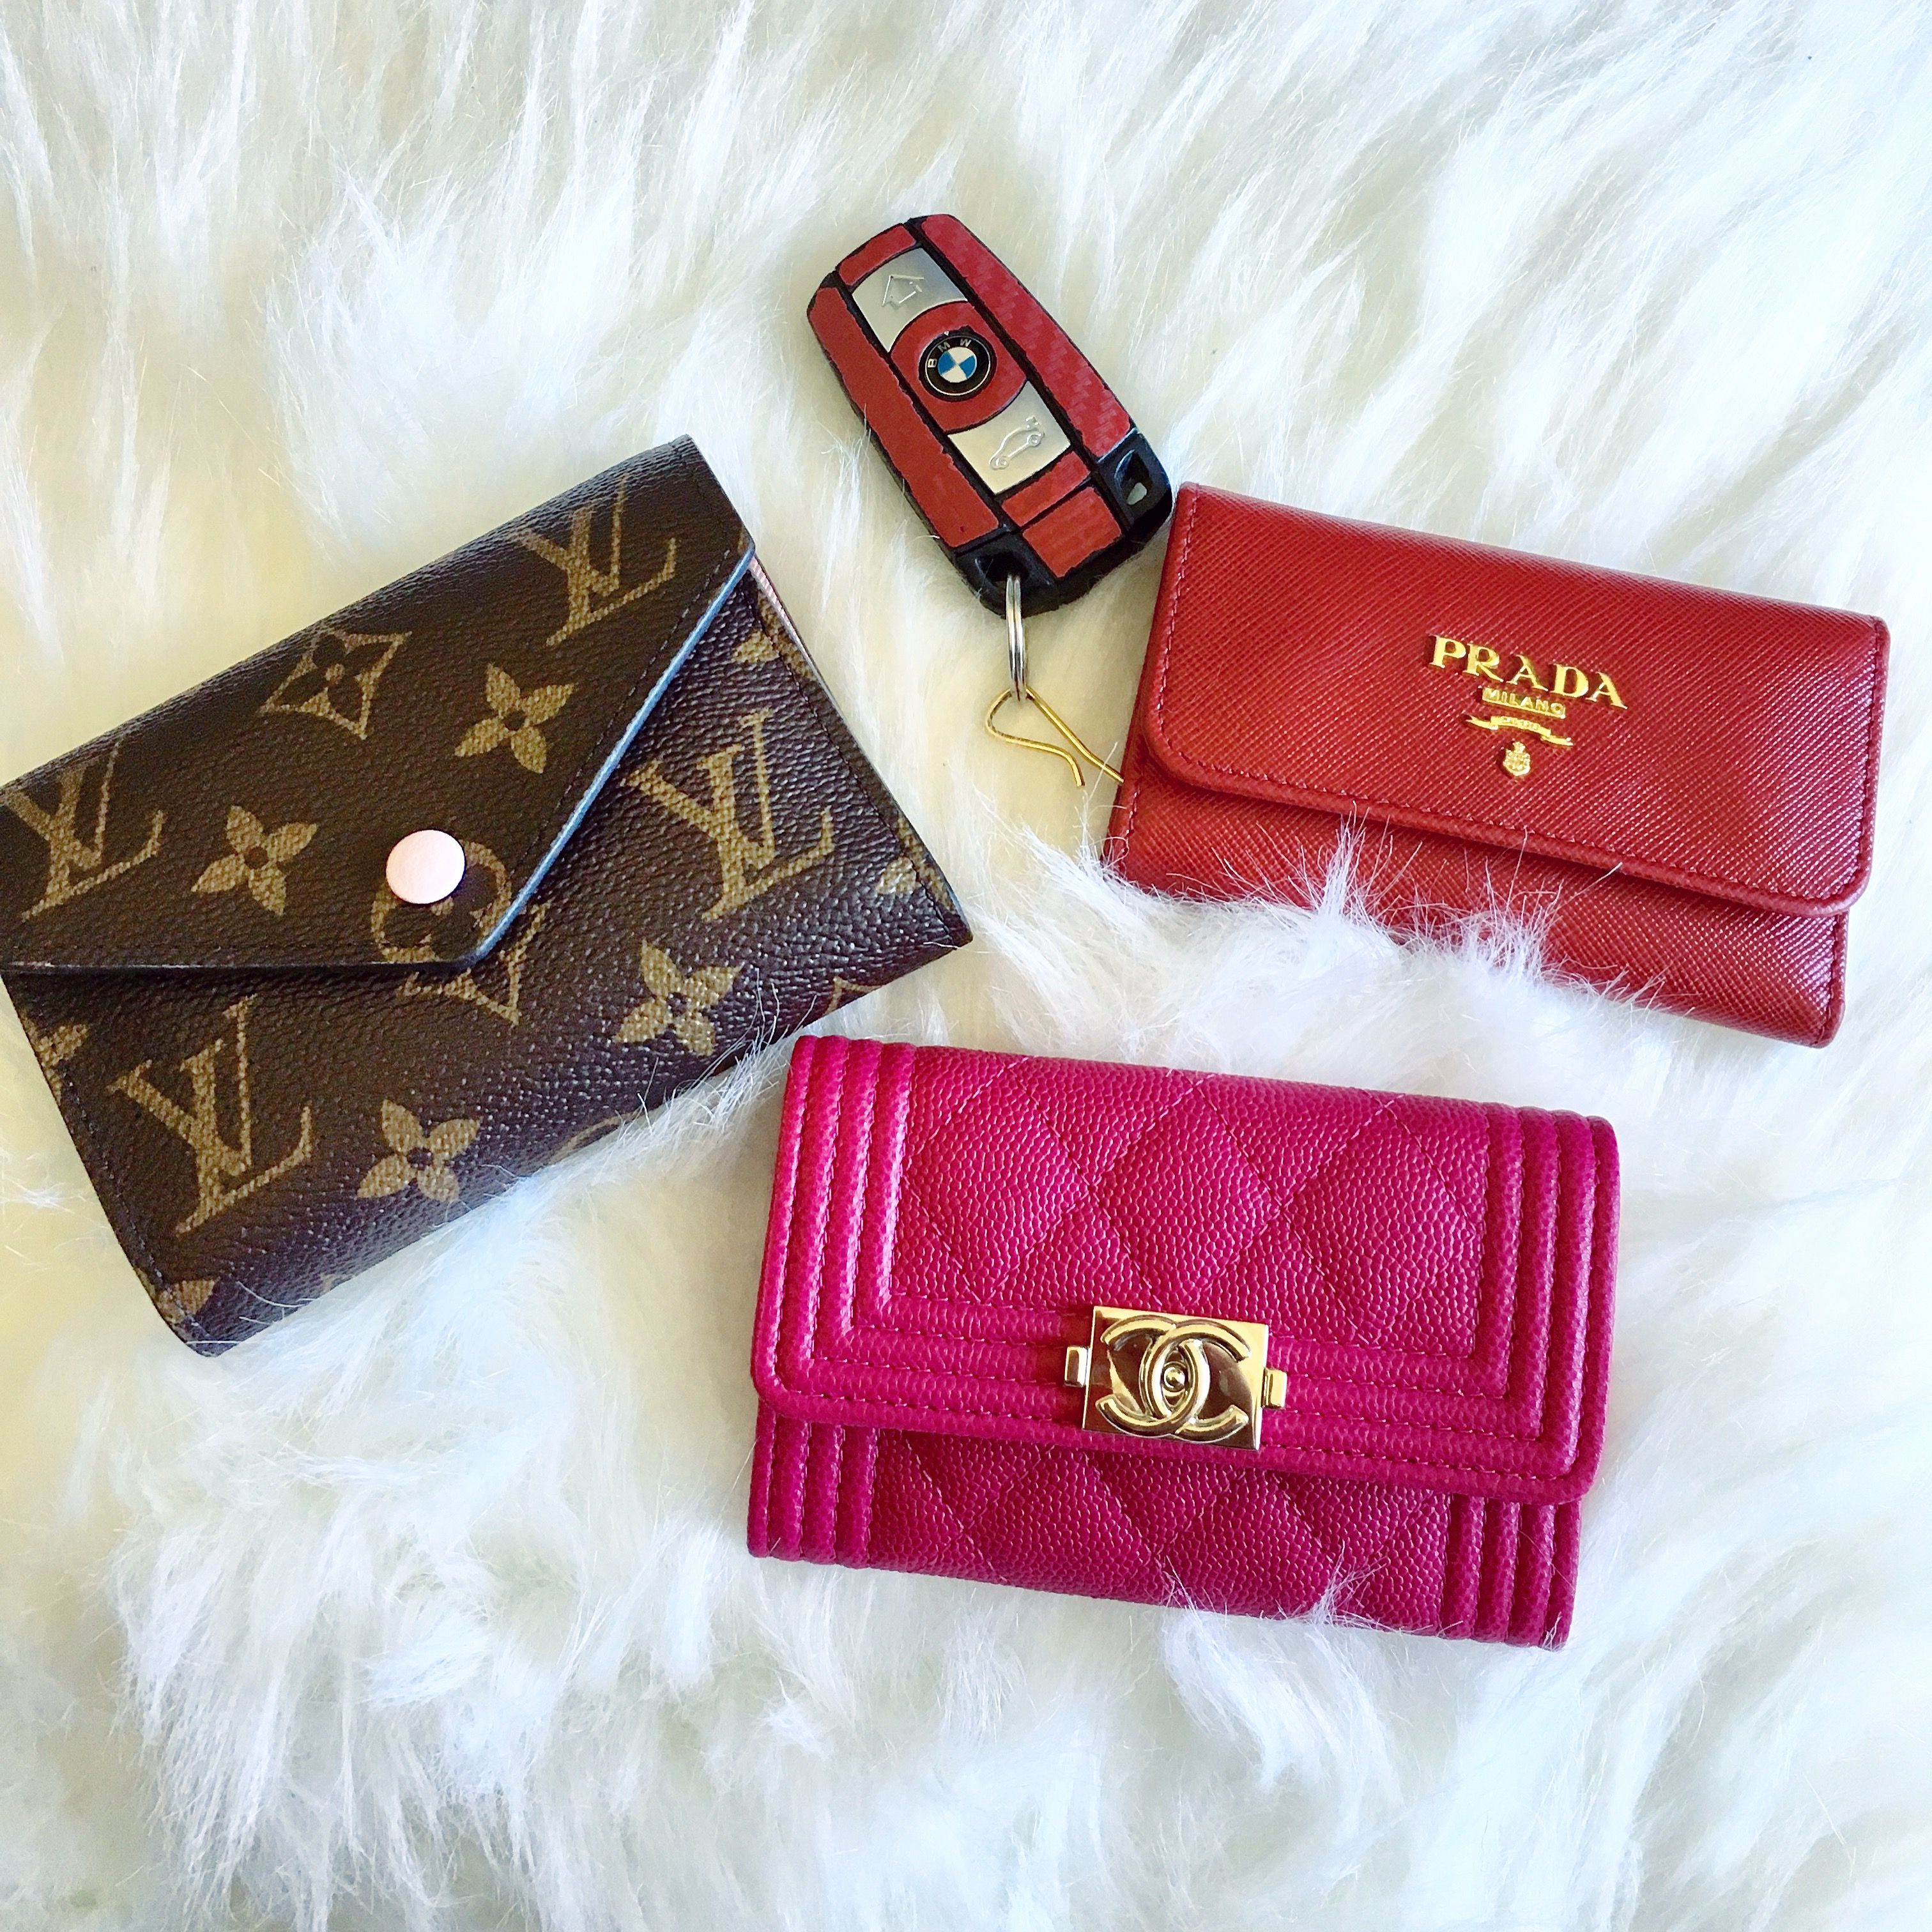 33978951db31 Small leather goods, Chanel boy wallet card case, Louis Vuitton victorine  wallet, Prada key holder